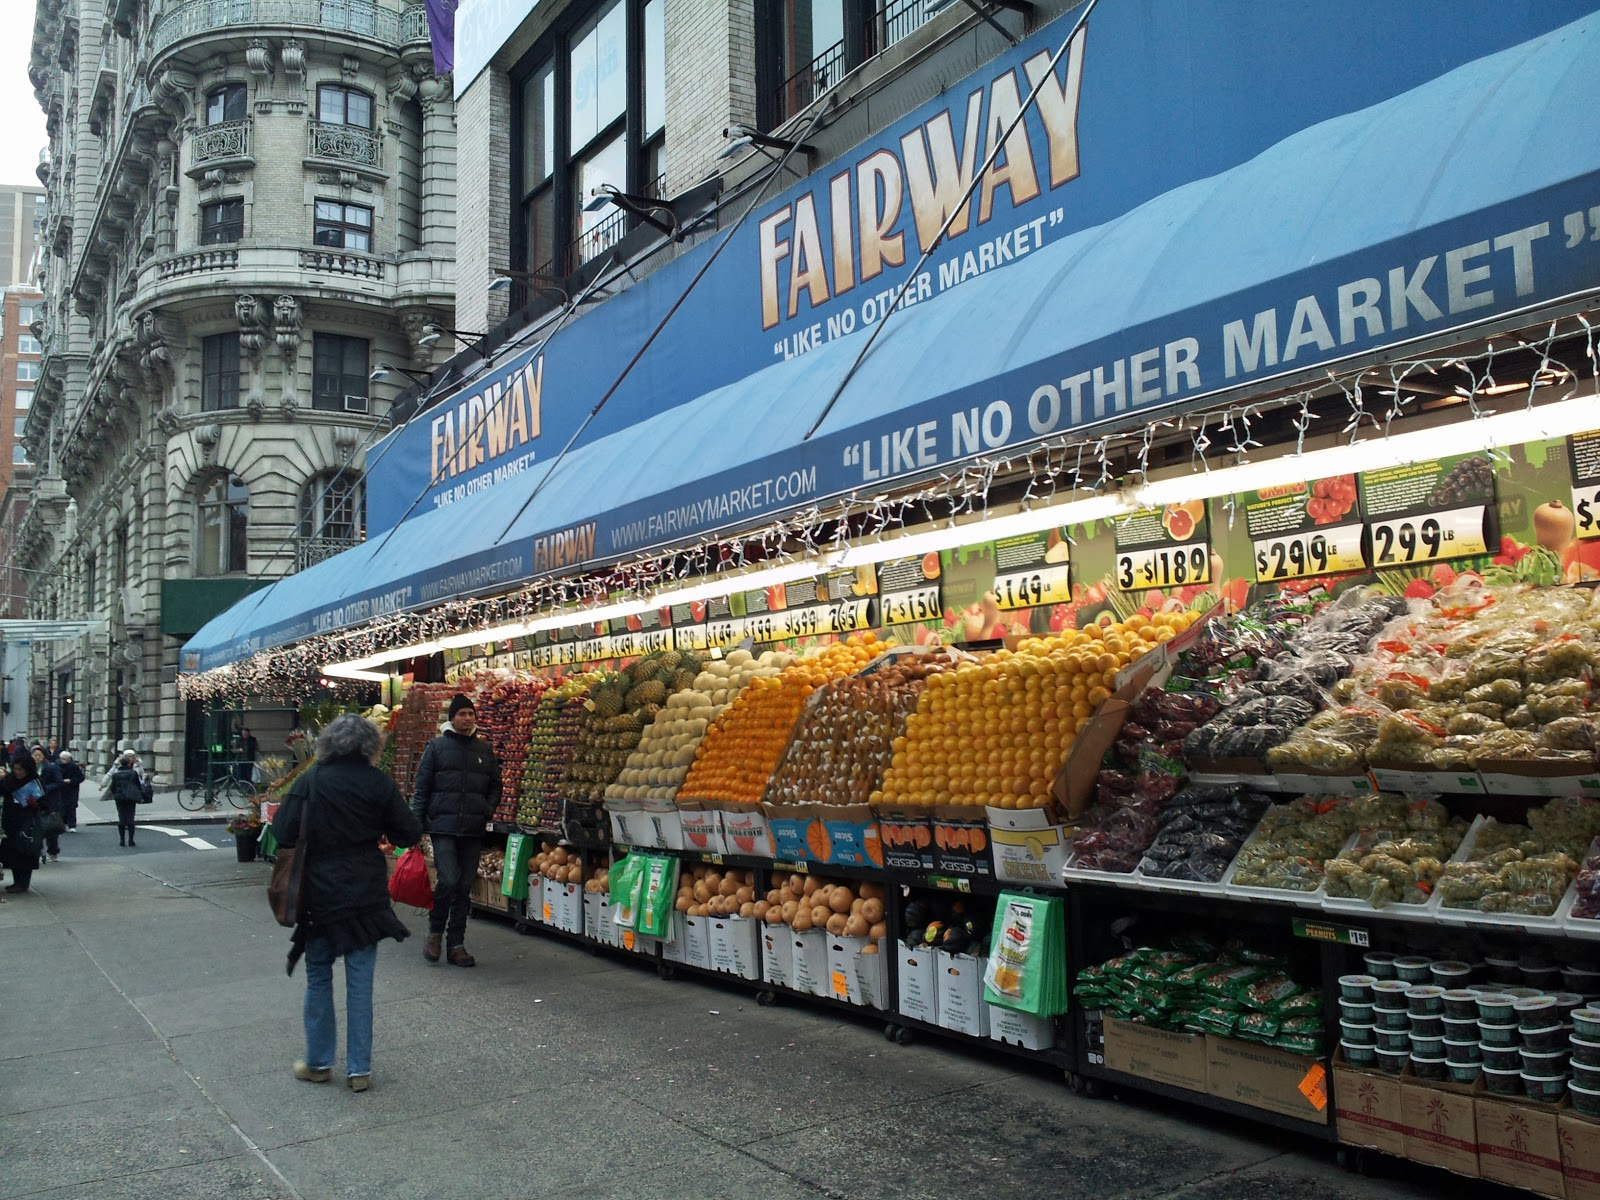 Fairway Shop The Traveling Celiac Breakfast In Manhattan